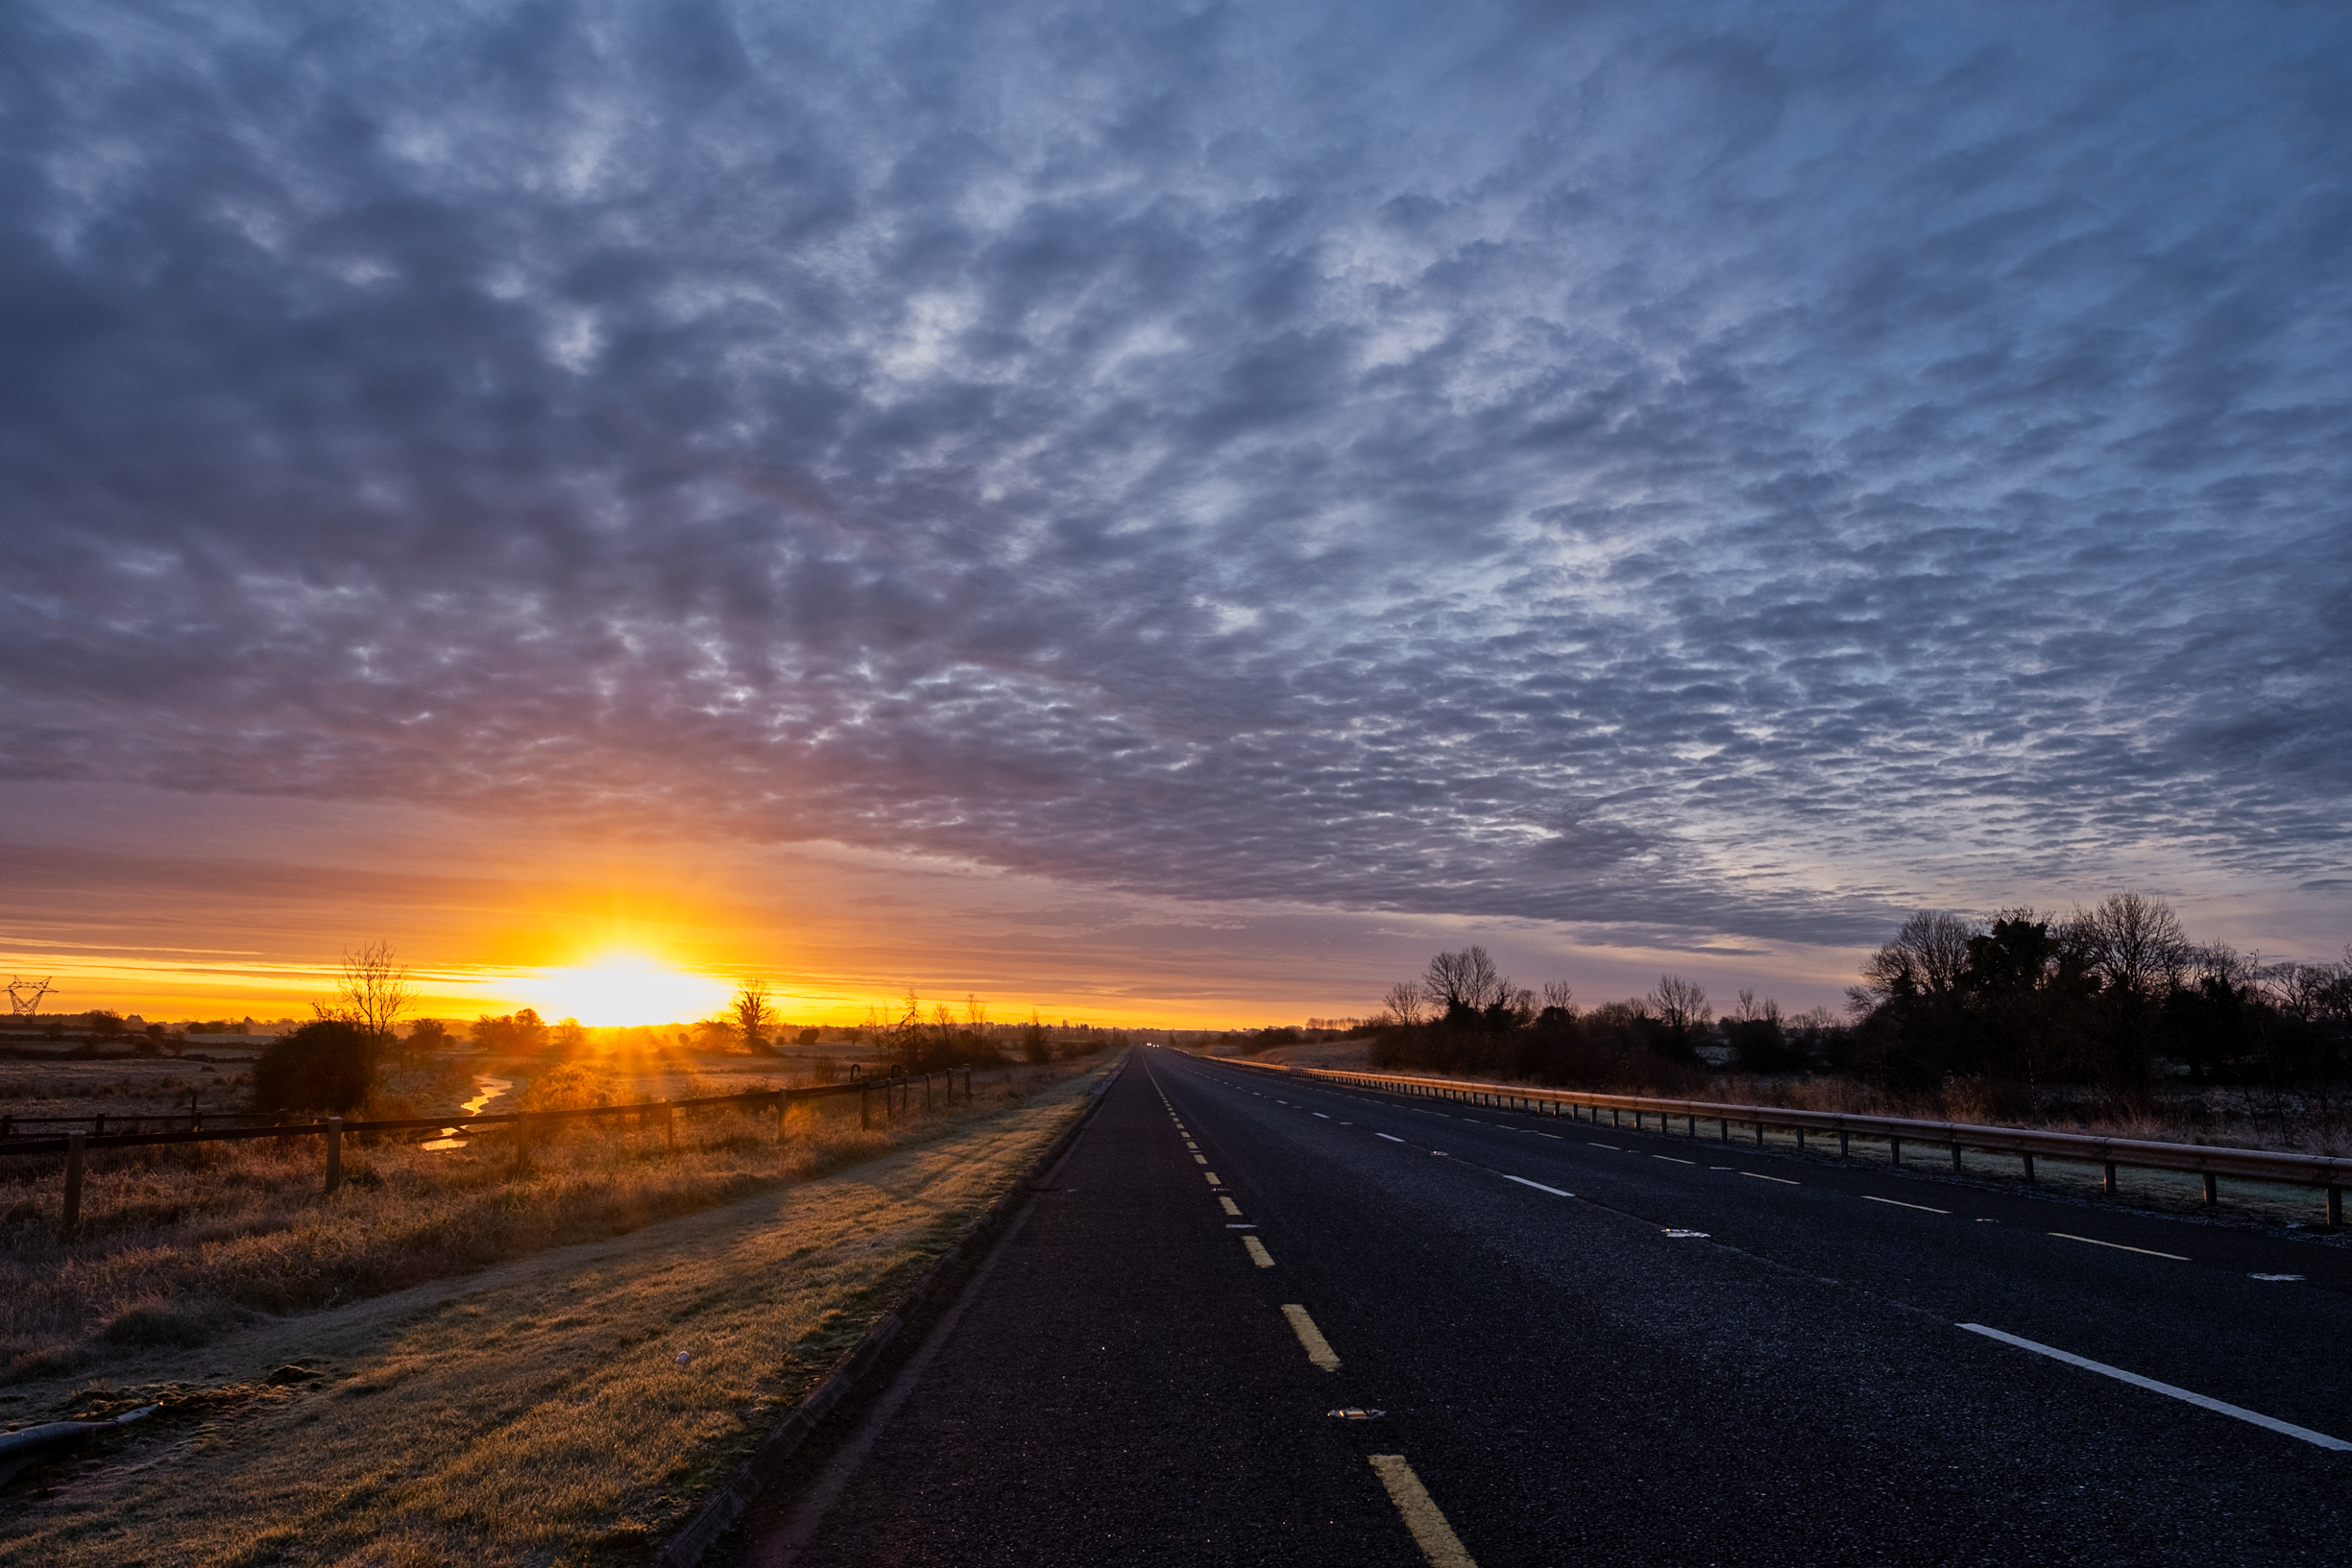 sunrise on link road to loughrea